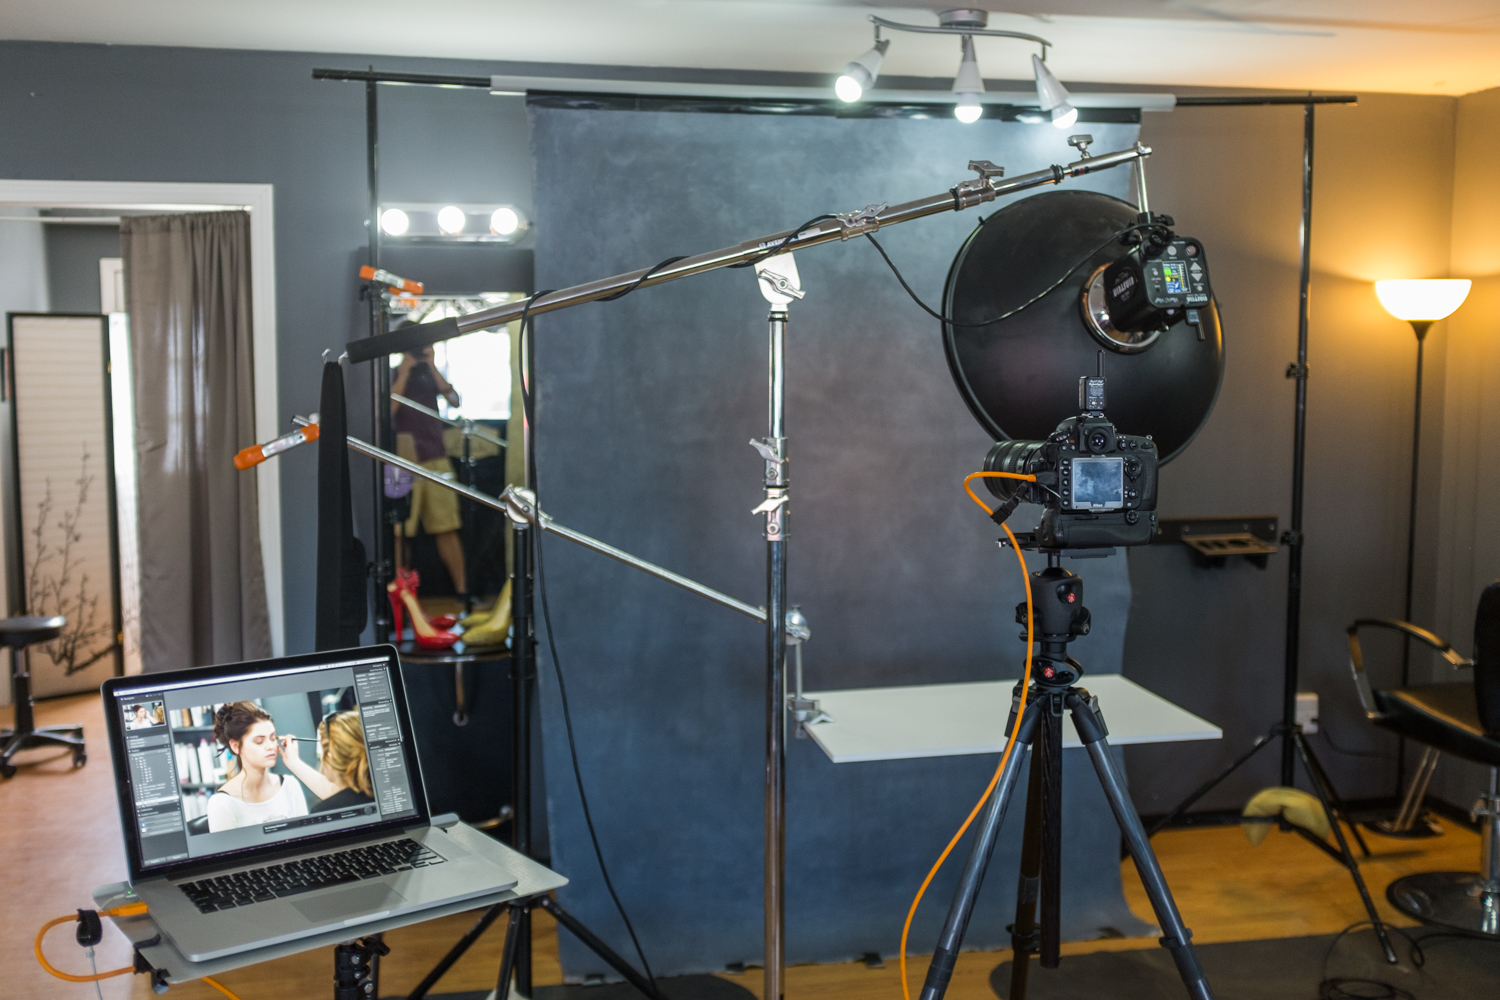 Behind the scenes of the lighting setup I used for the shoot, tethering to my laptop.